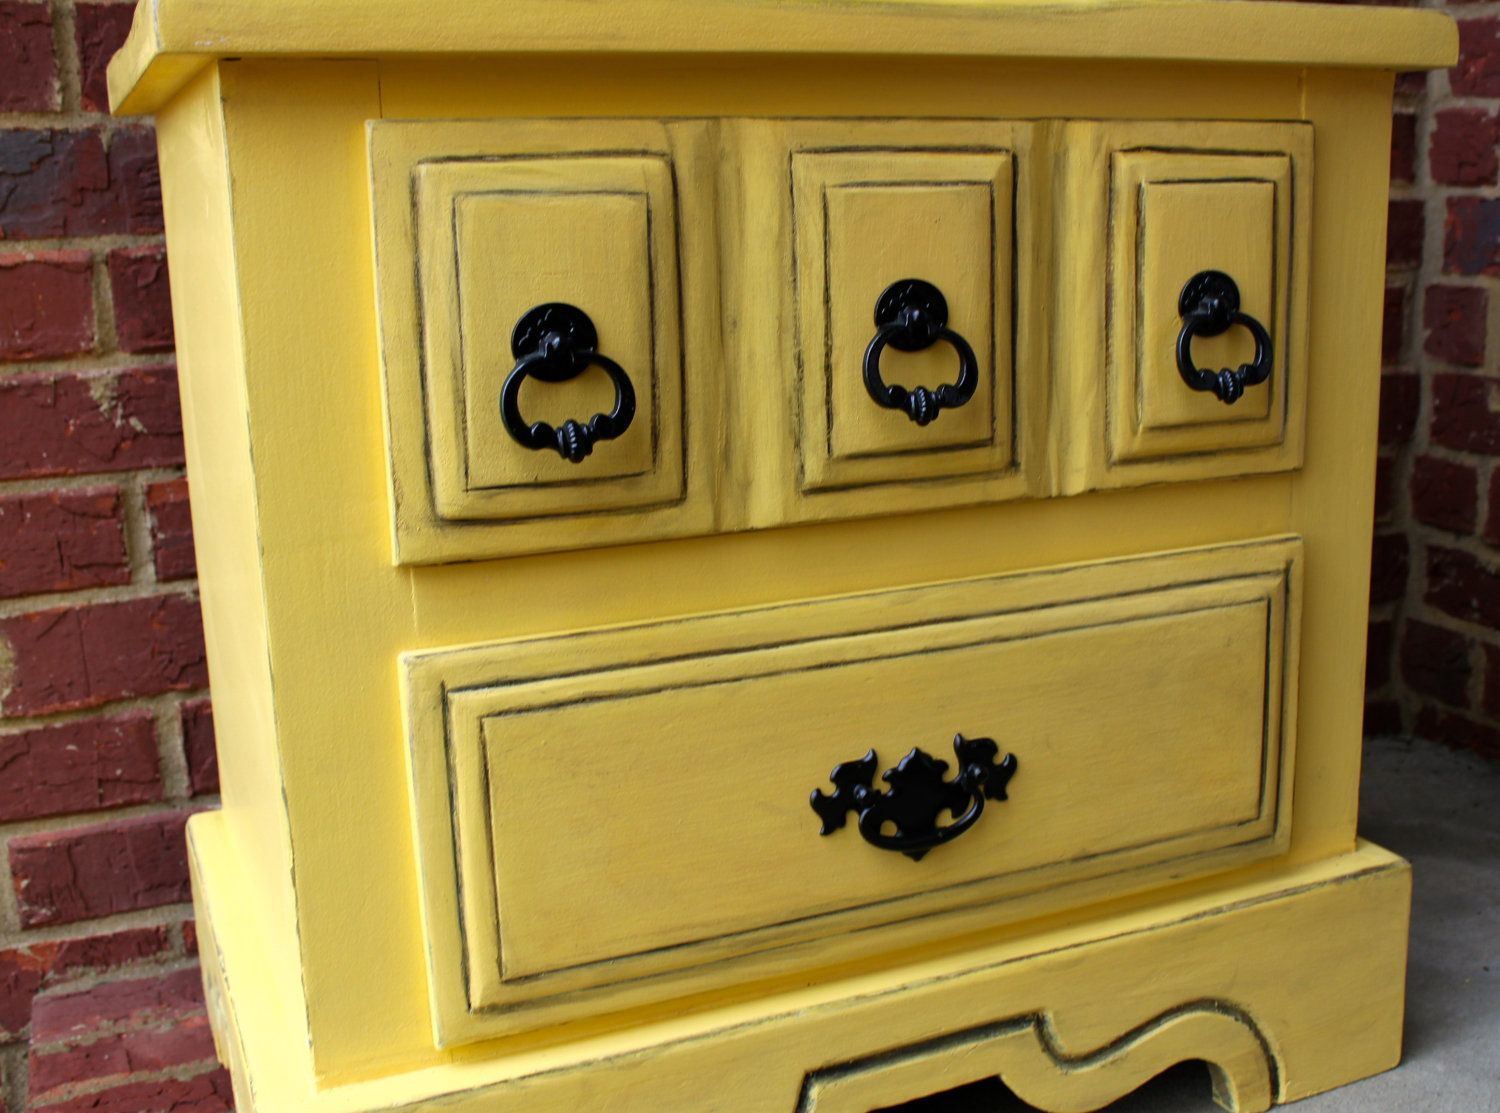 Yellow shabby chic furniture - Distressed Nightstand Side End Table Yellow Marigold Bedroom Furniture Tv Stand Storage Vintage Clearance